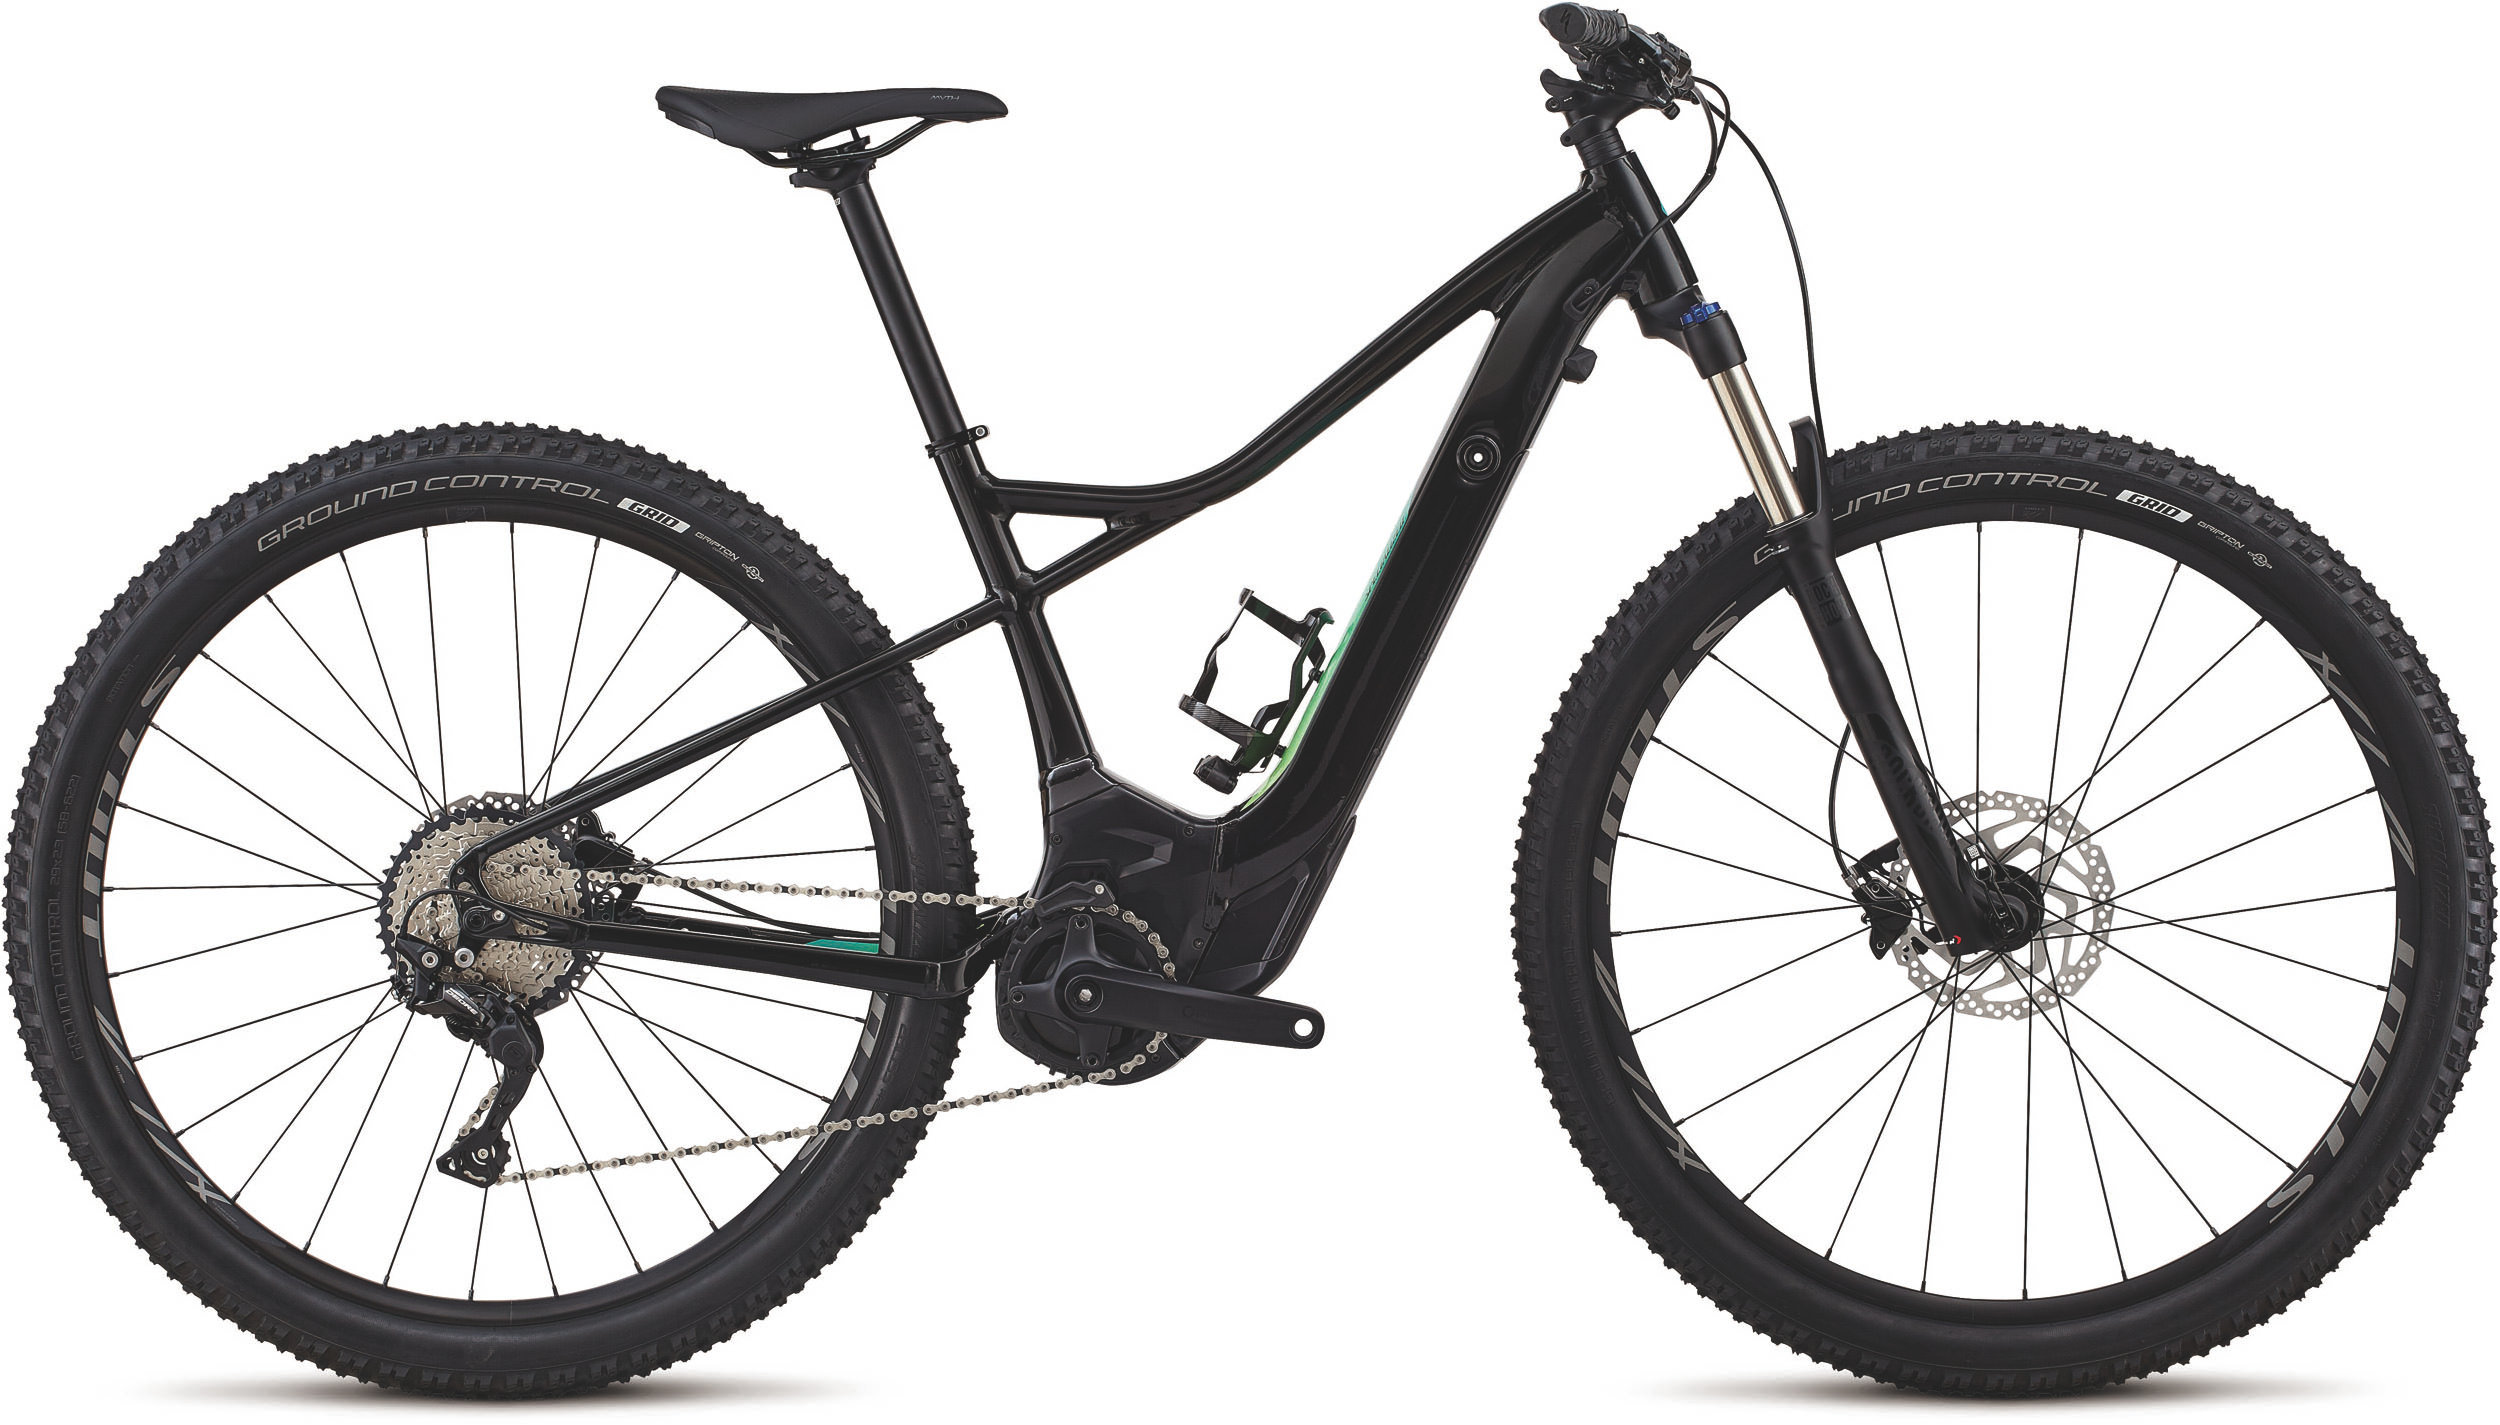 Specialized Women´s Turbo Levo Hardtail 29 Gloss Tarmac Black / Cali Fade S - Bike Maniac